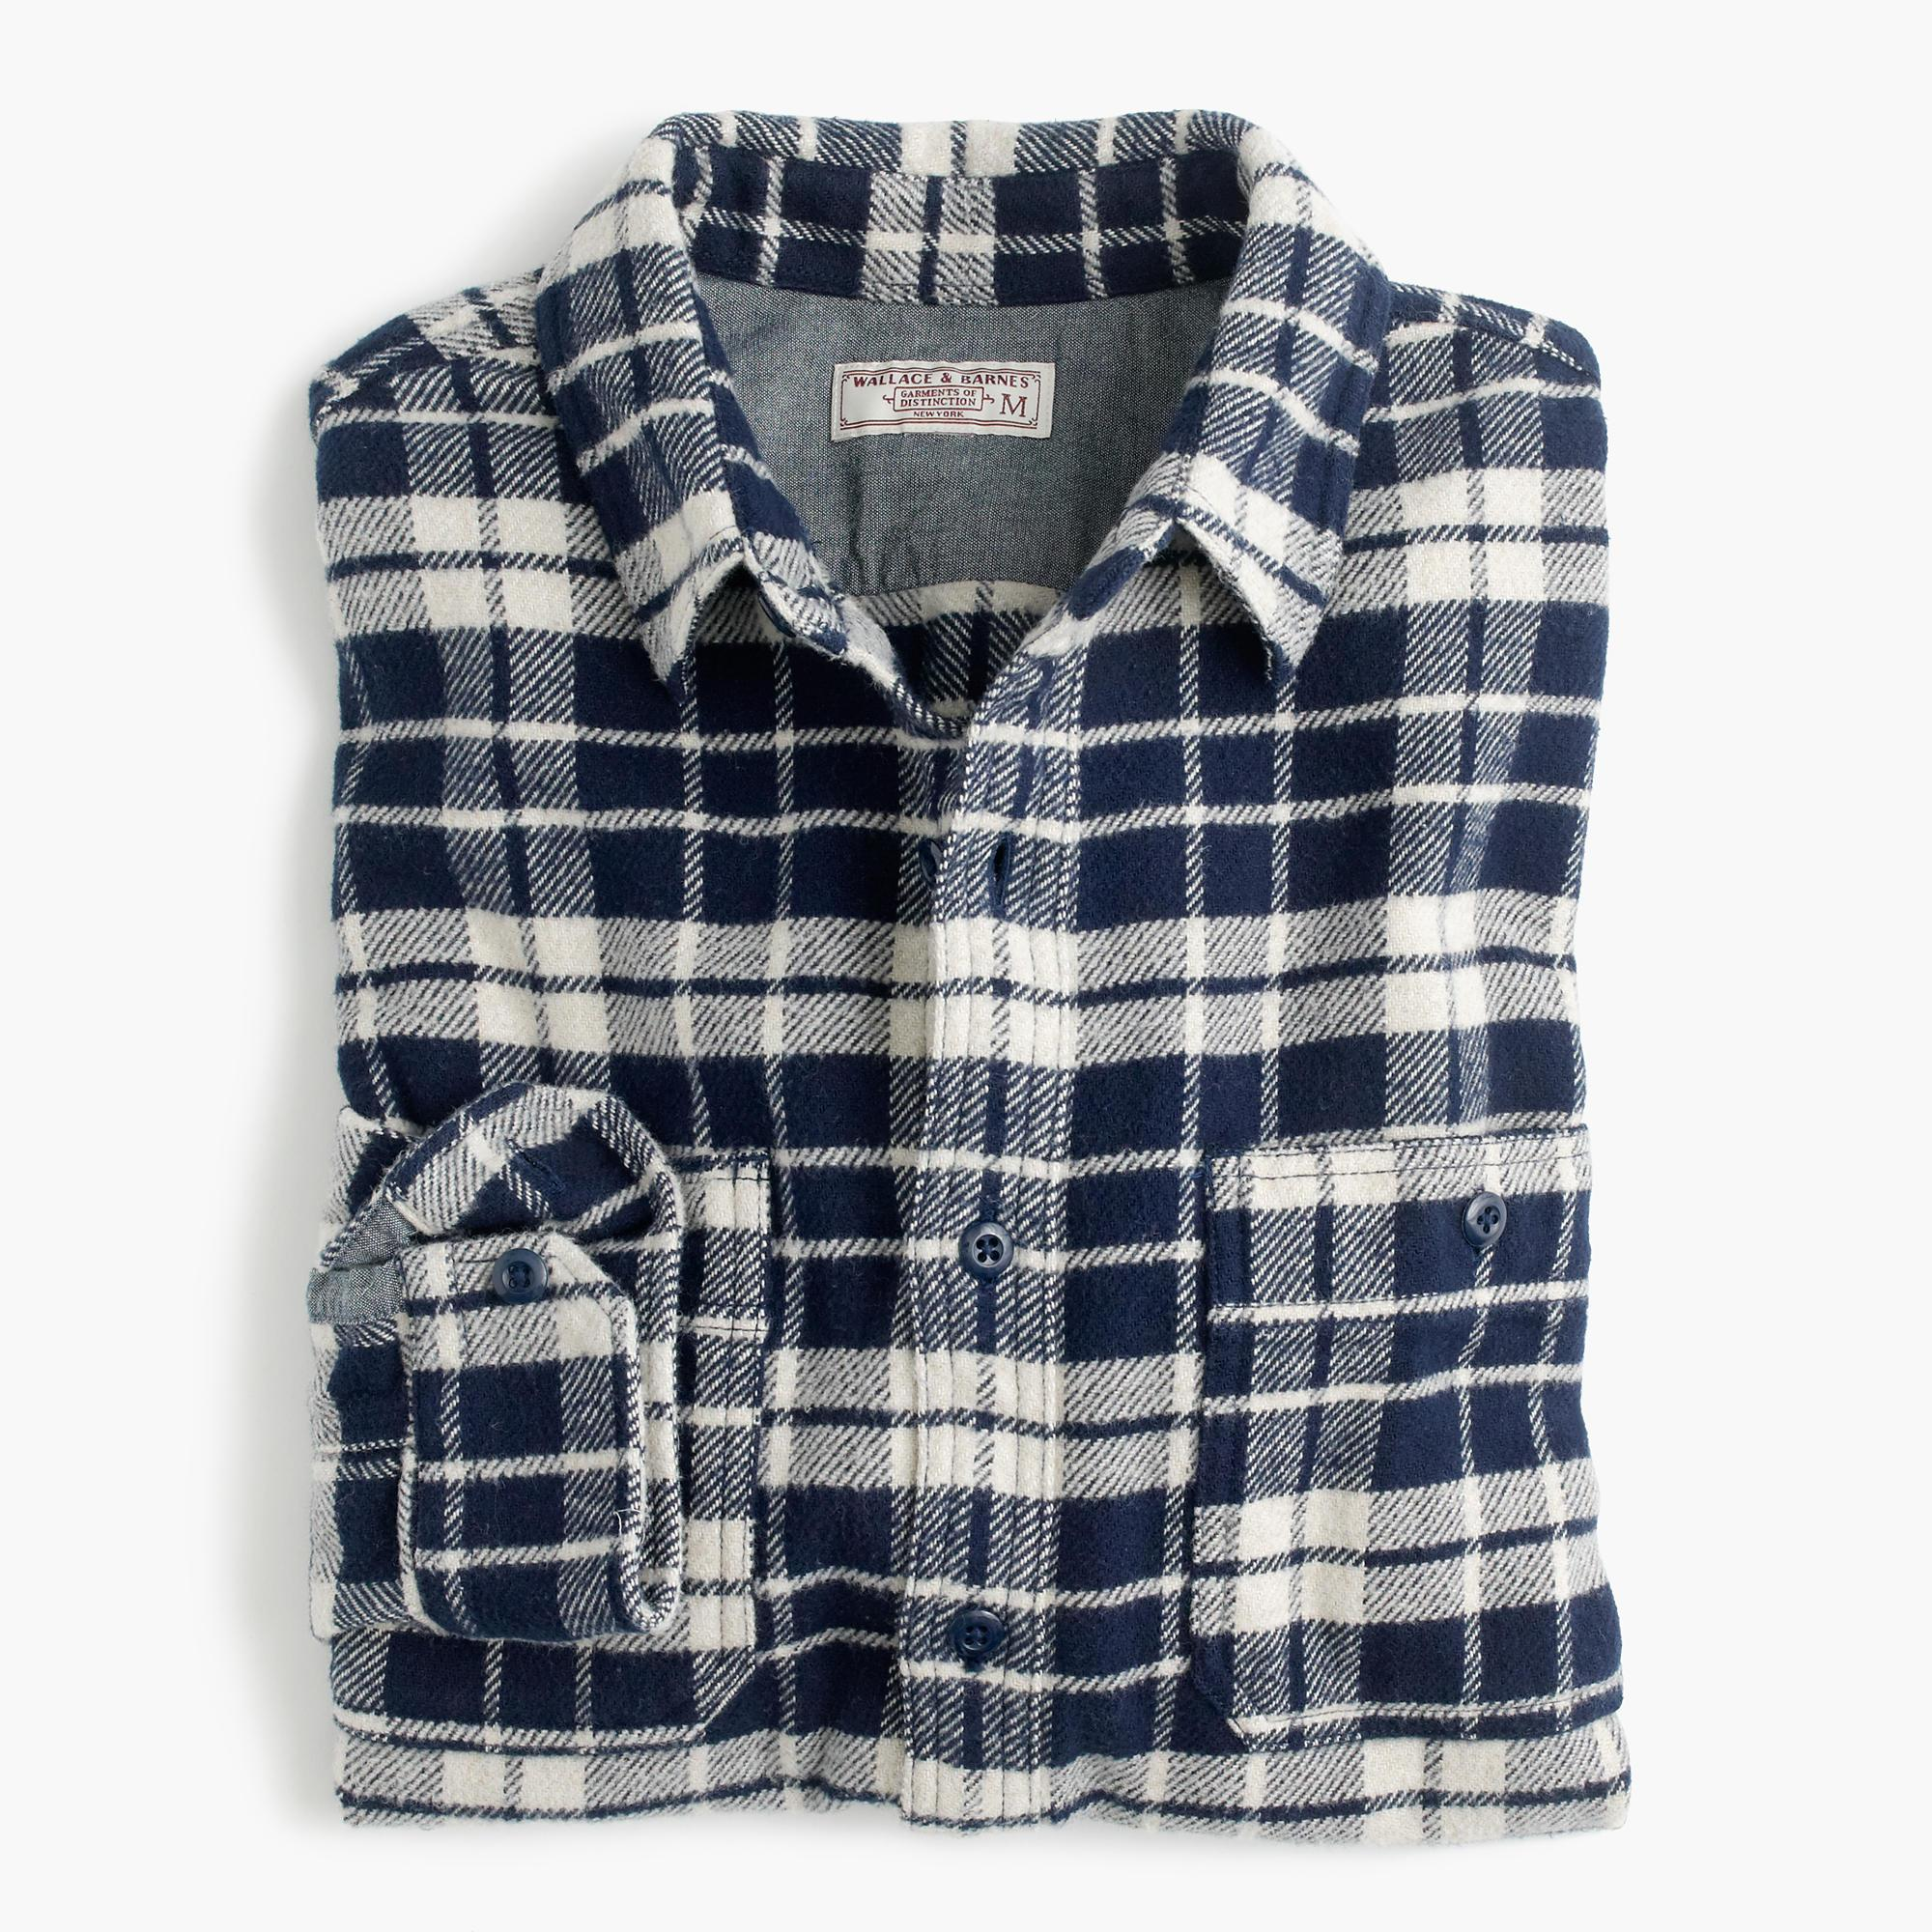 Wallace Barnes Heavyweight Flannel Shirt In Blue